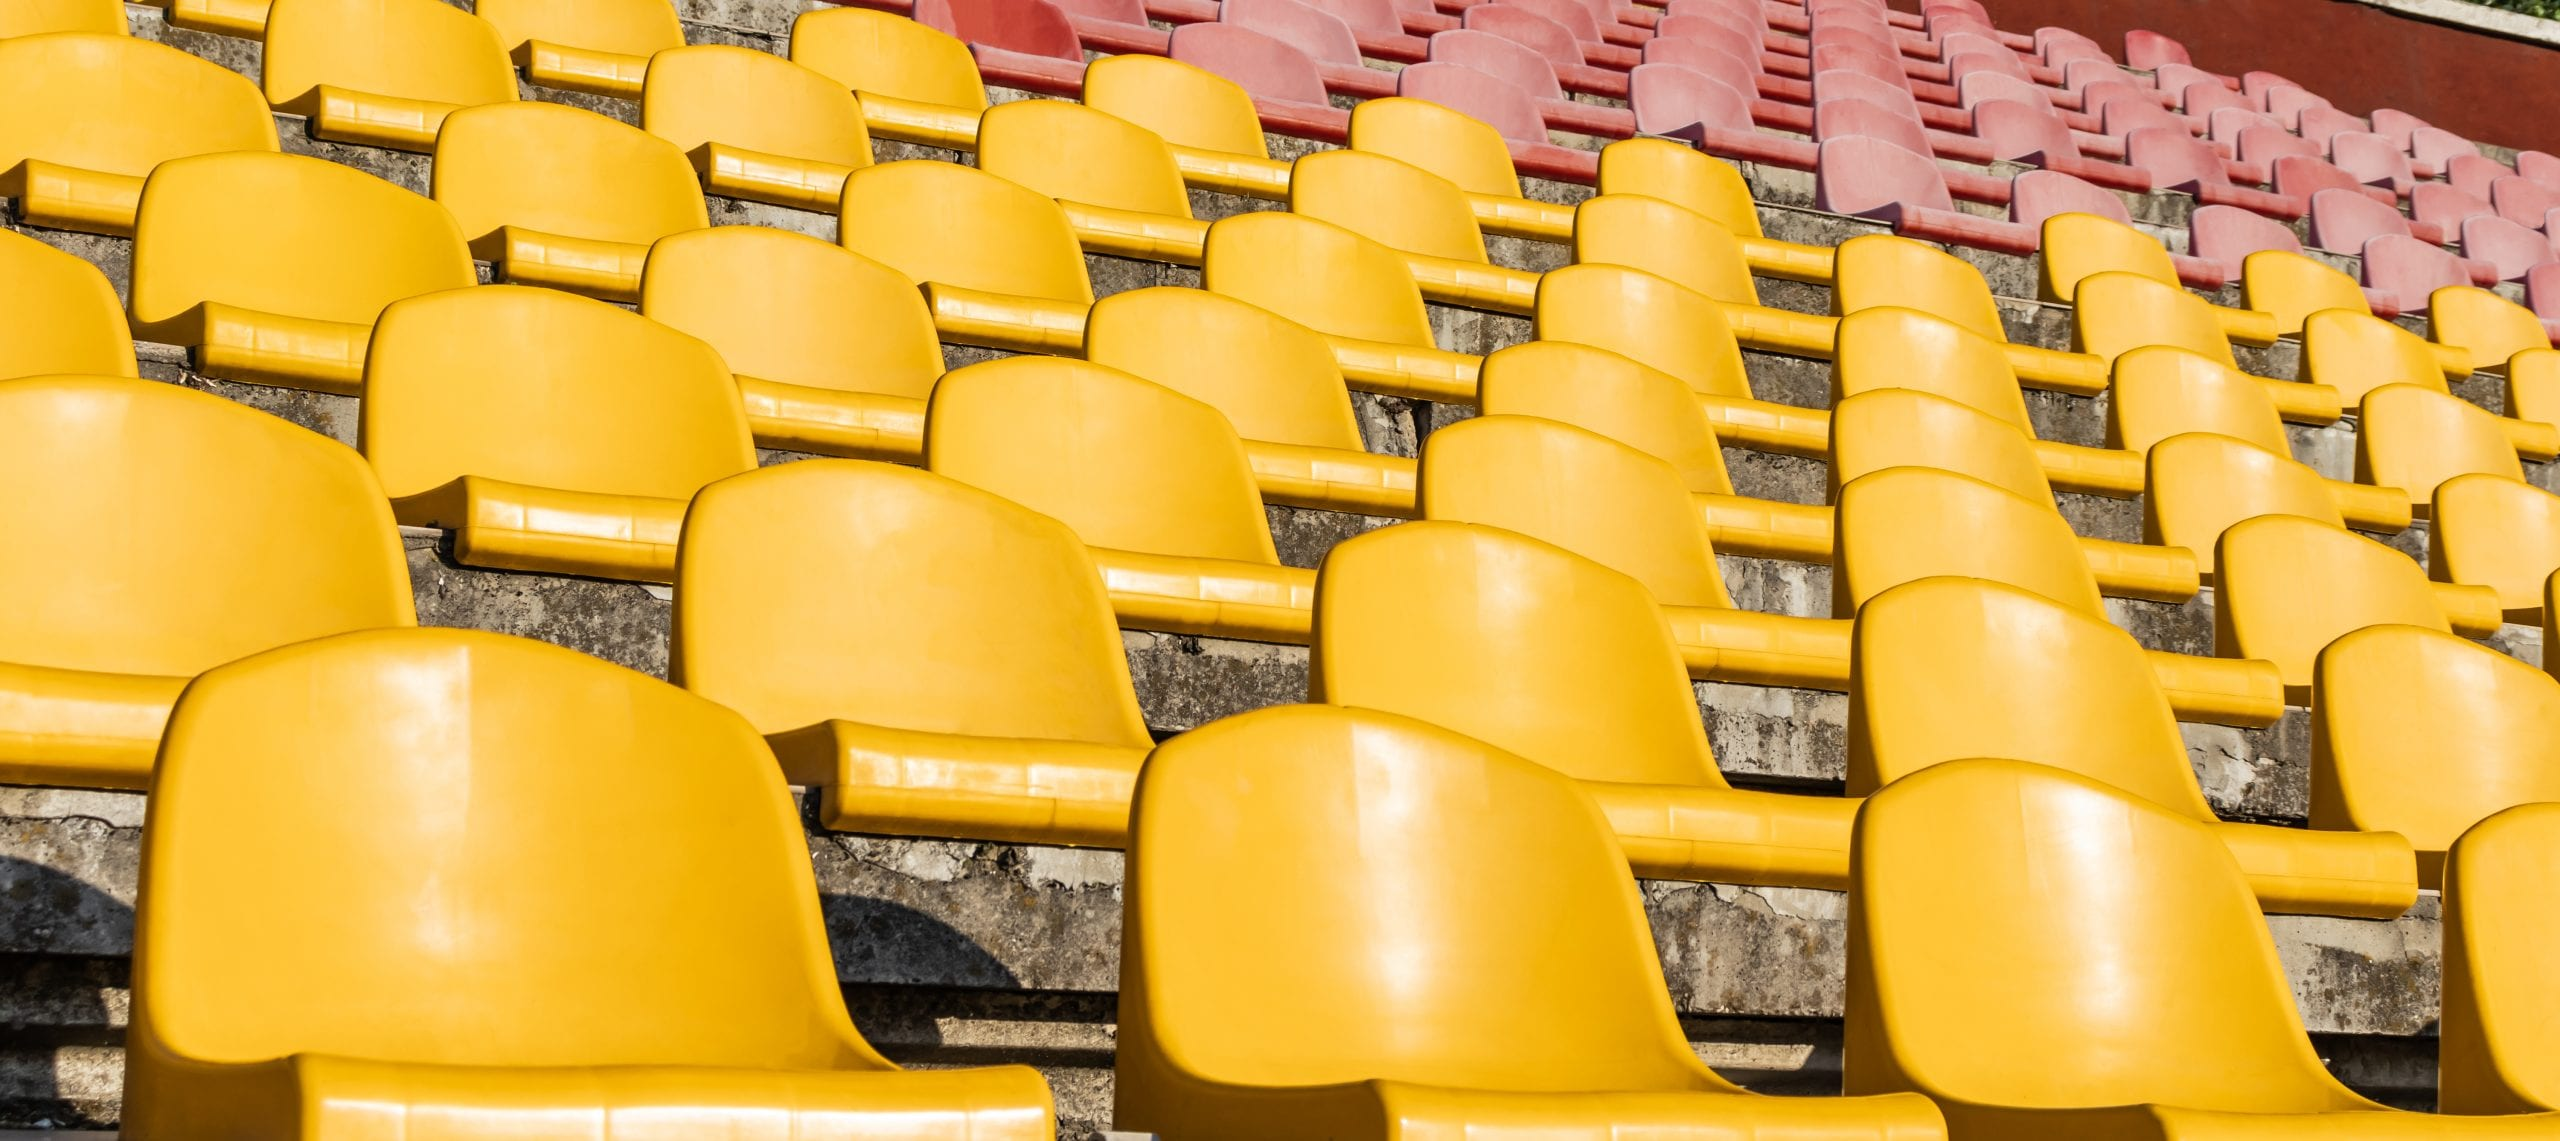 empty stands